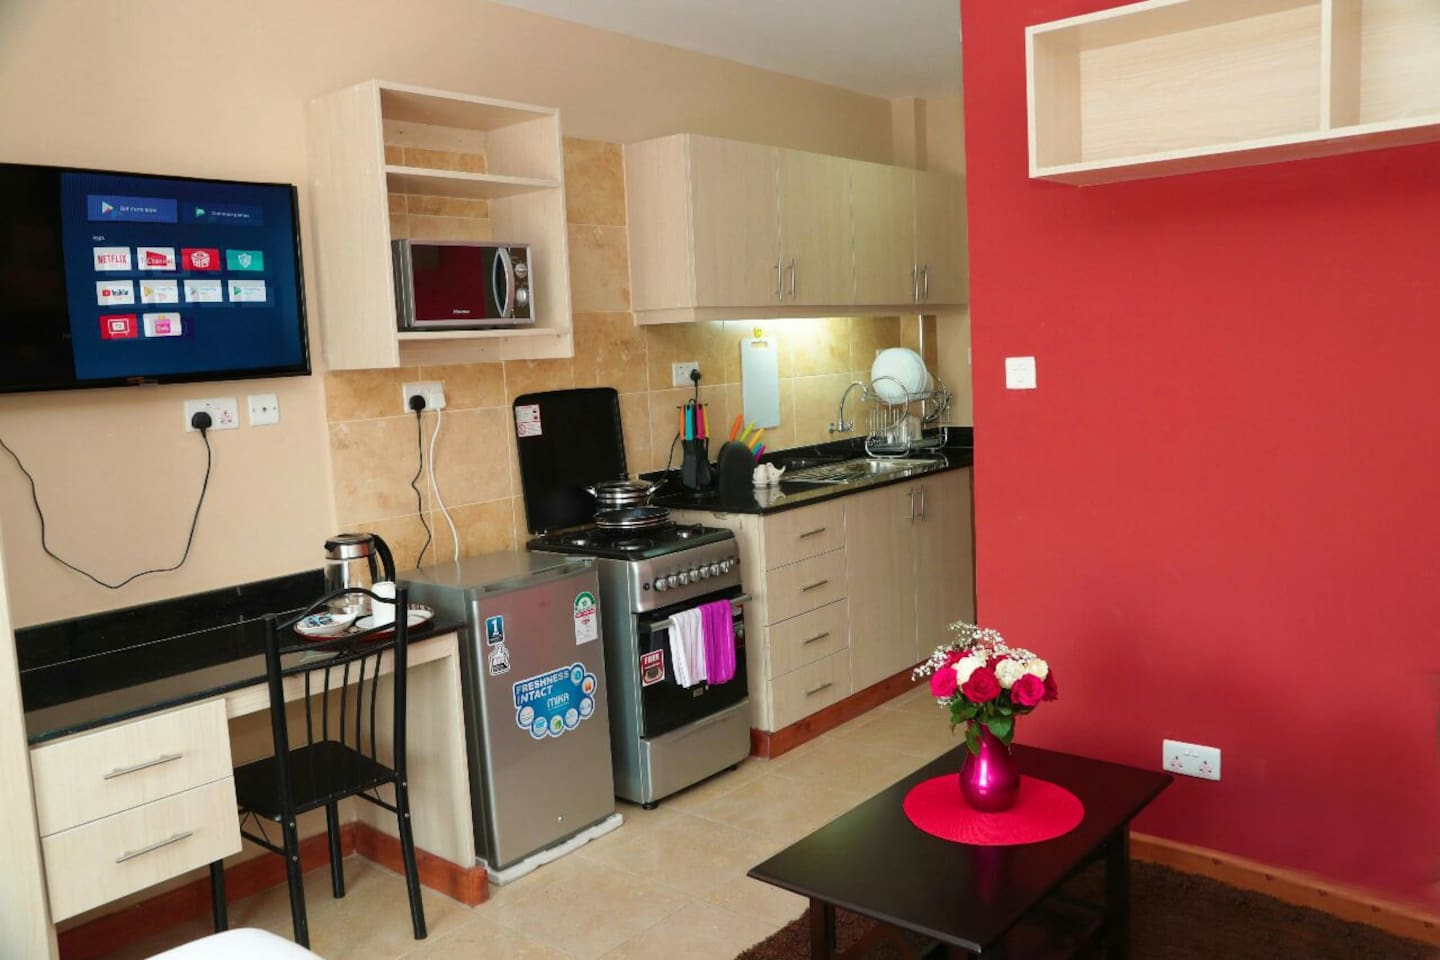 your palace like accommodation contains a fully functional kitchen with cutlery, state of the art entertainment including wifi and a smart TV allowing you to watch your favorite program just as if you were at home